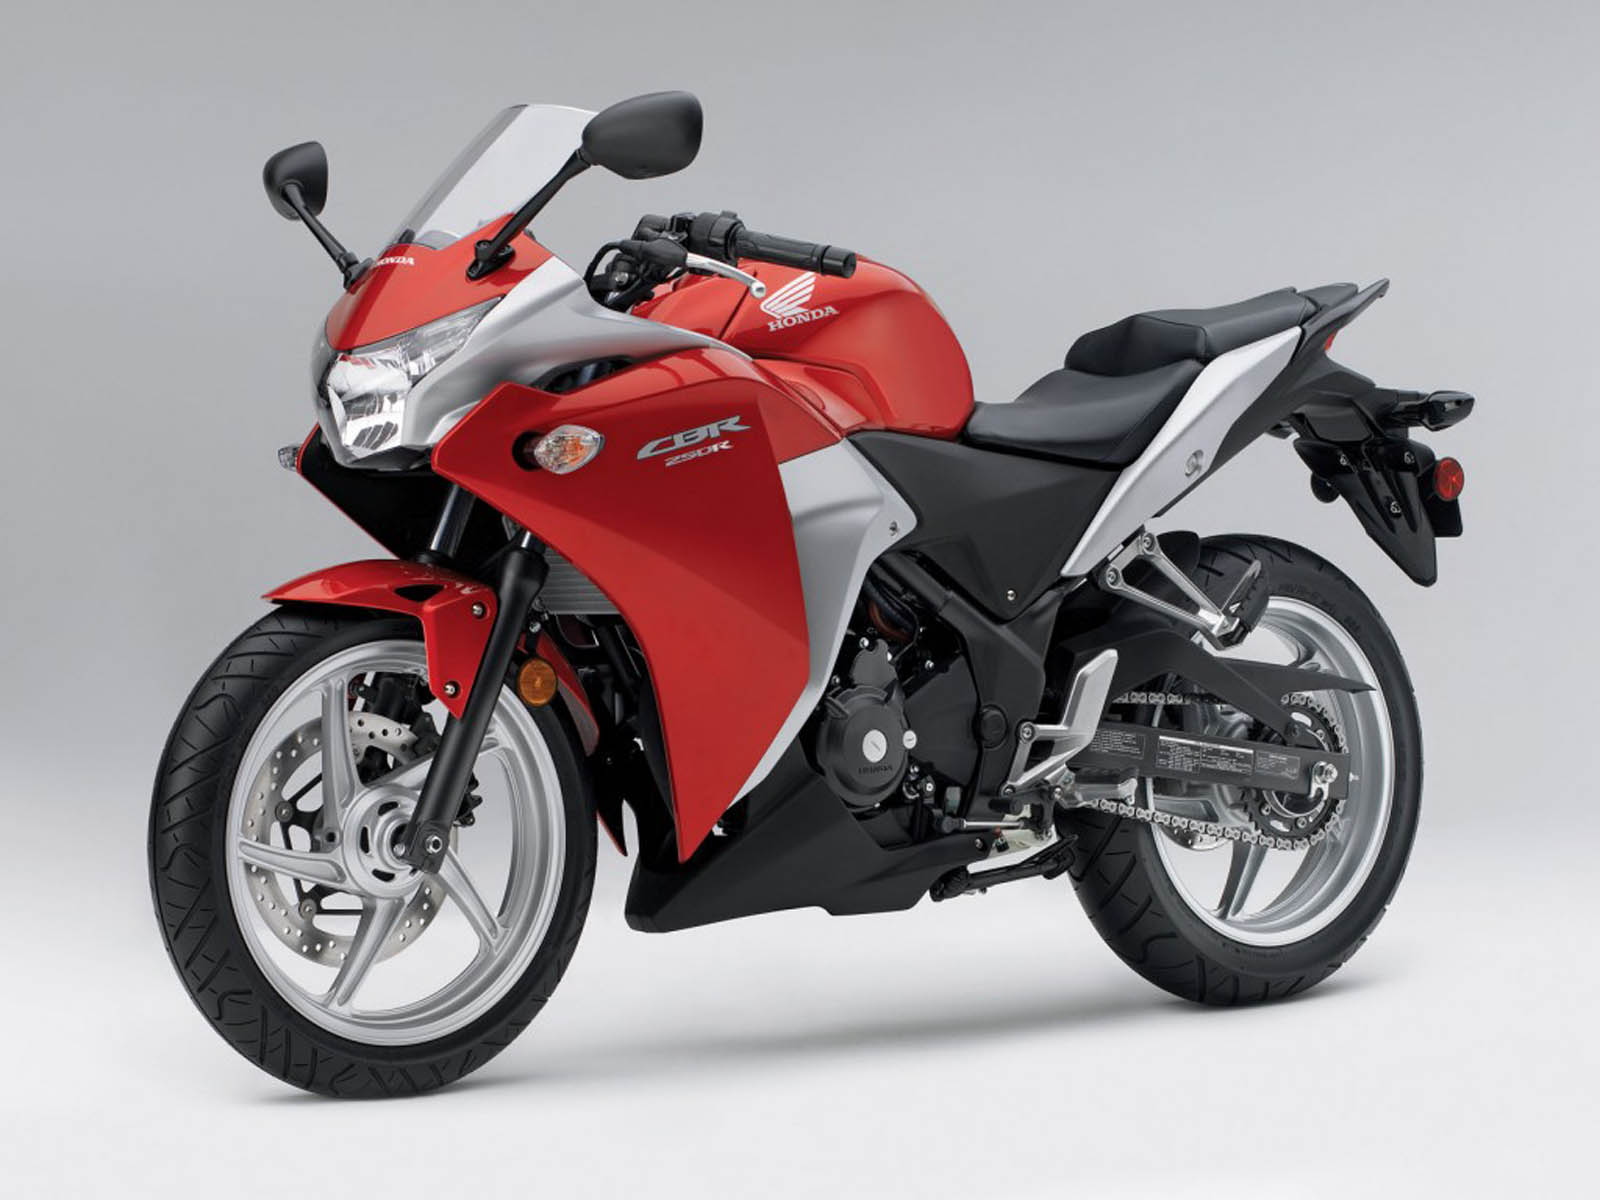 wallpapers: Honda CBR 250R Bike Wallpapers